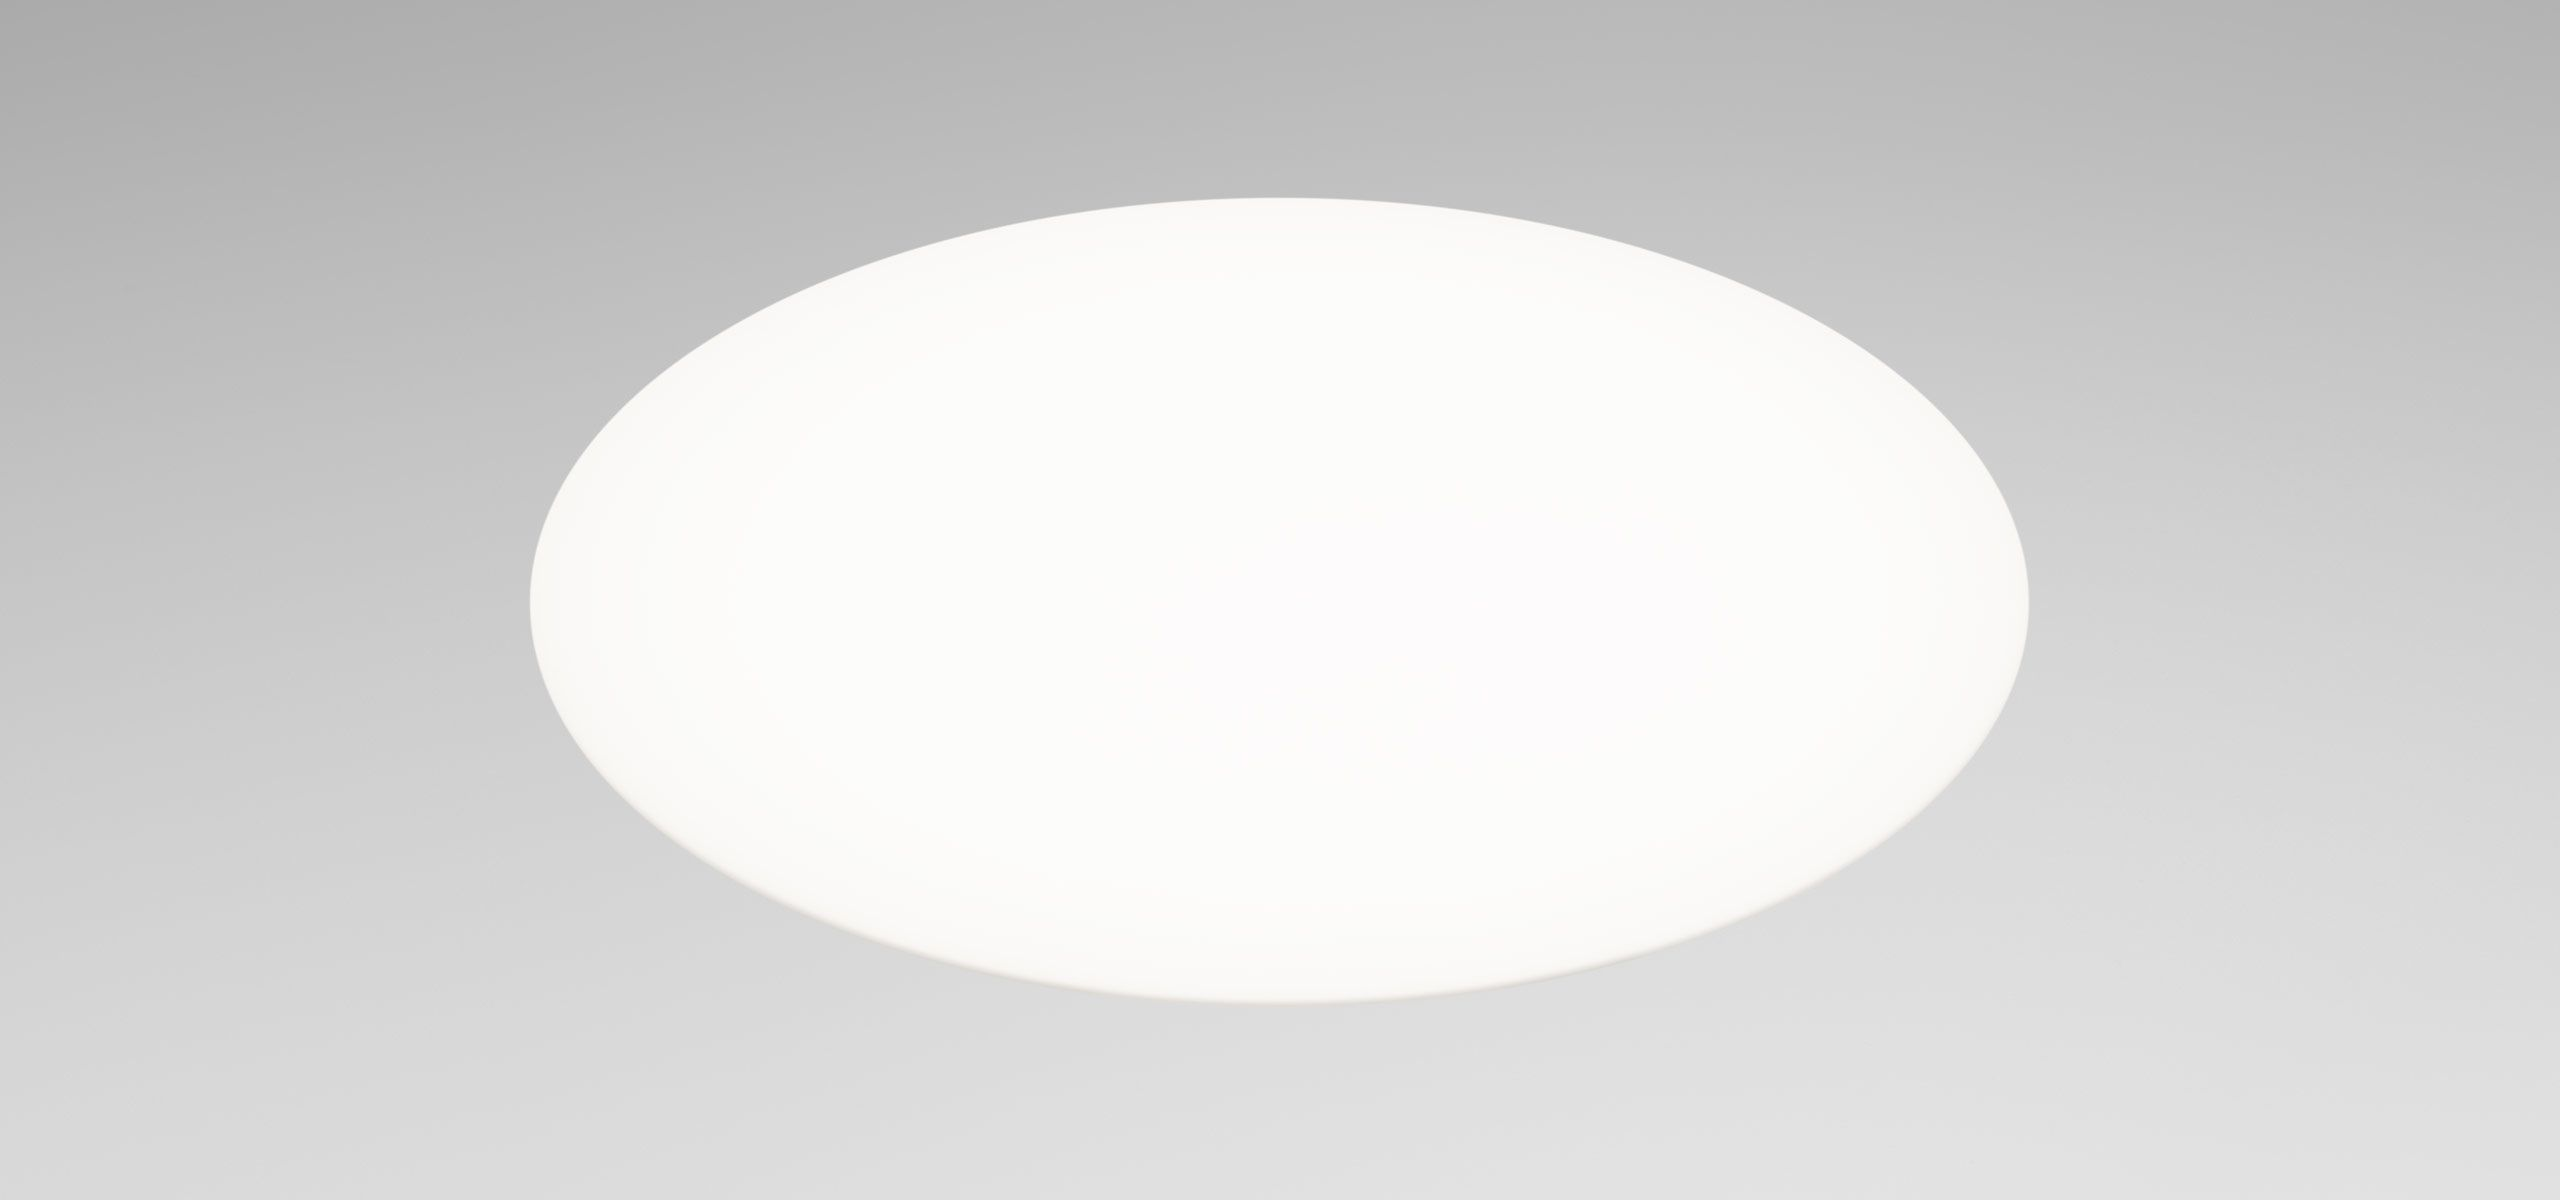 Round light-emitting diode panel for ceiling